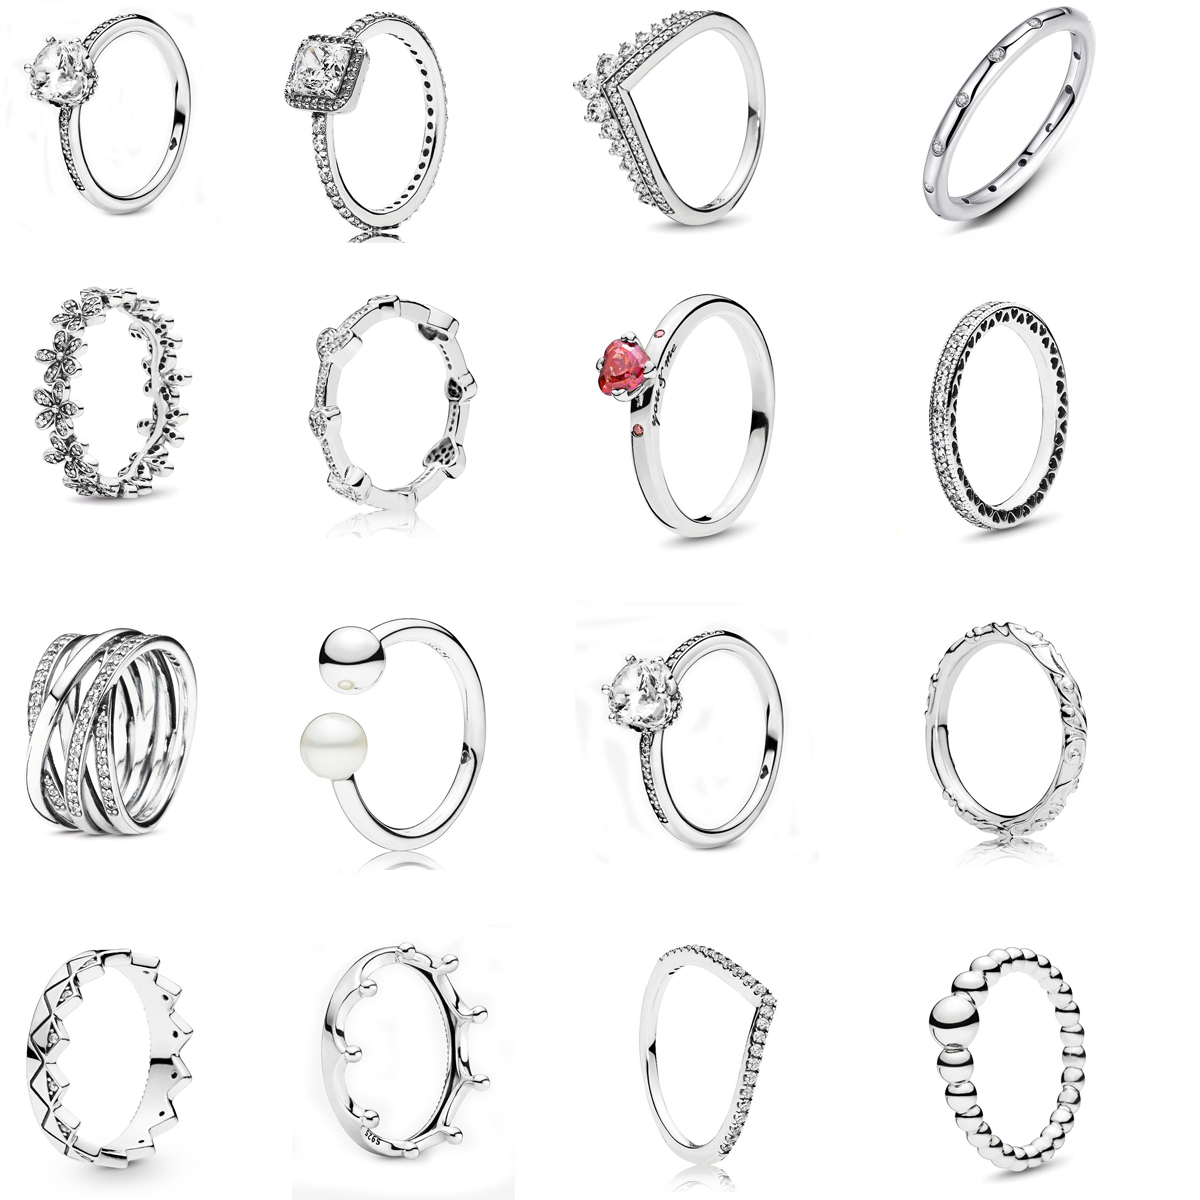 2020 New Free Shipping Authentic 925 Sterling Silver Stones Stripes Rings Exotic Crown Ring For Women DIY Jewelry S925 Rings|Rings| - AliExpress